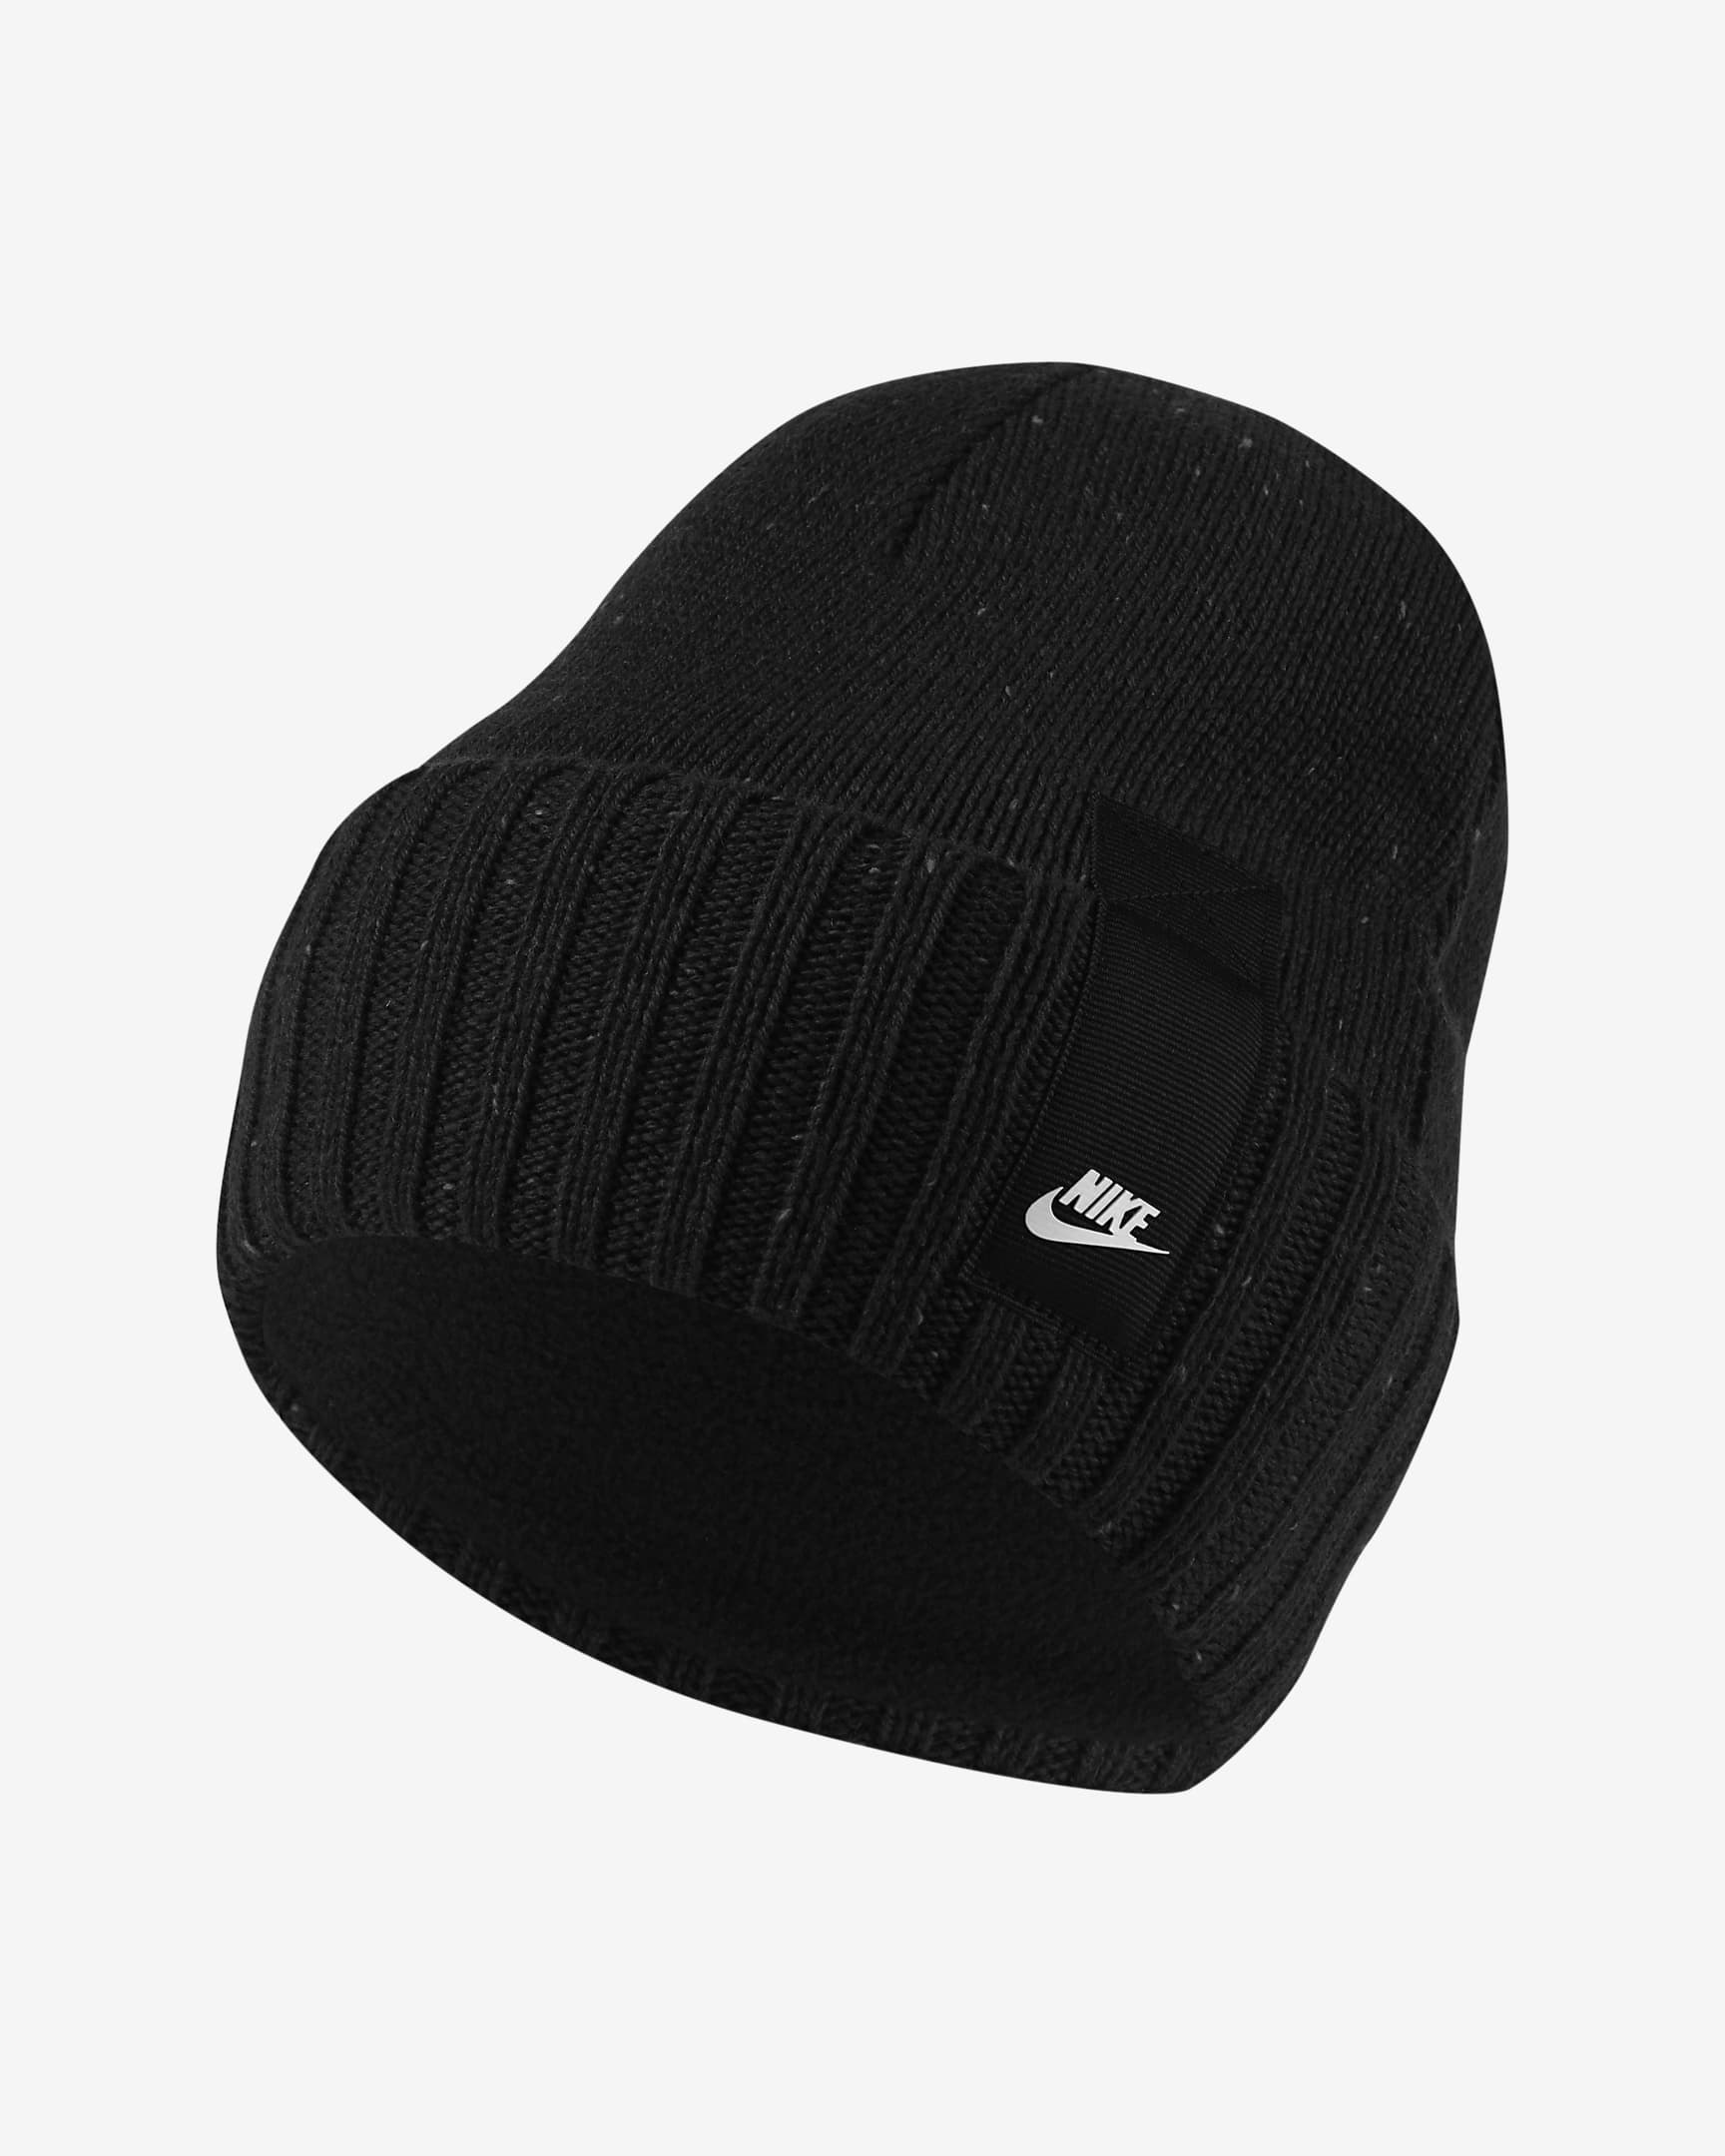 The black nike sportswear cuffed beanie